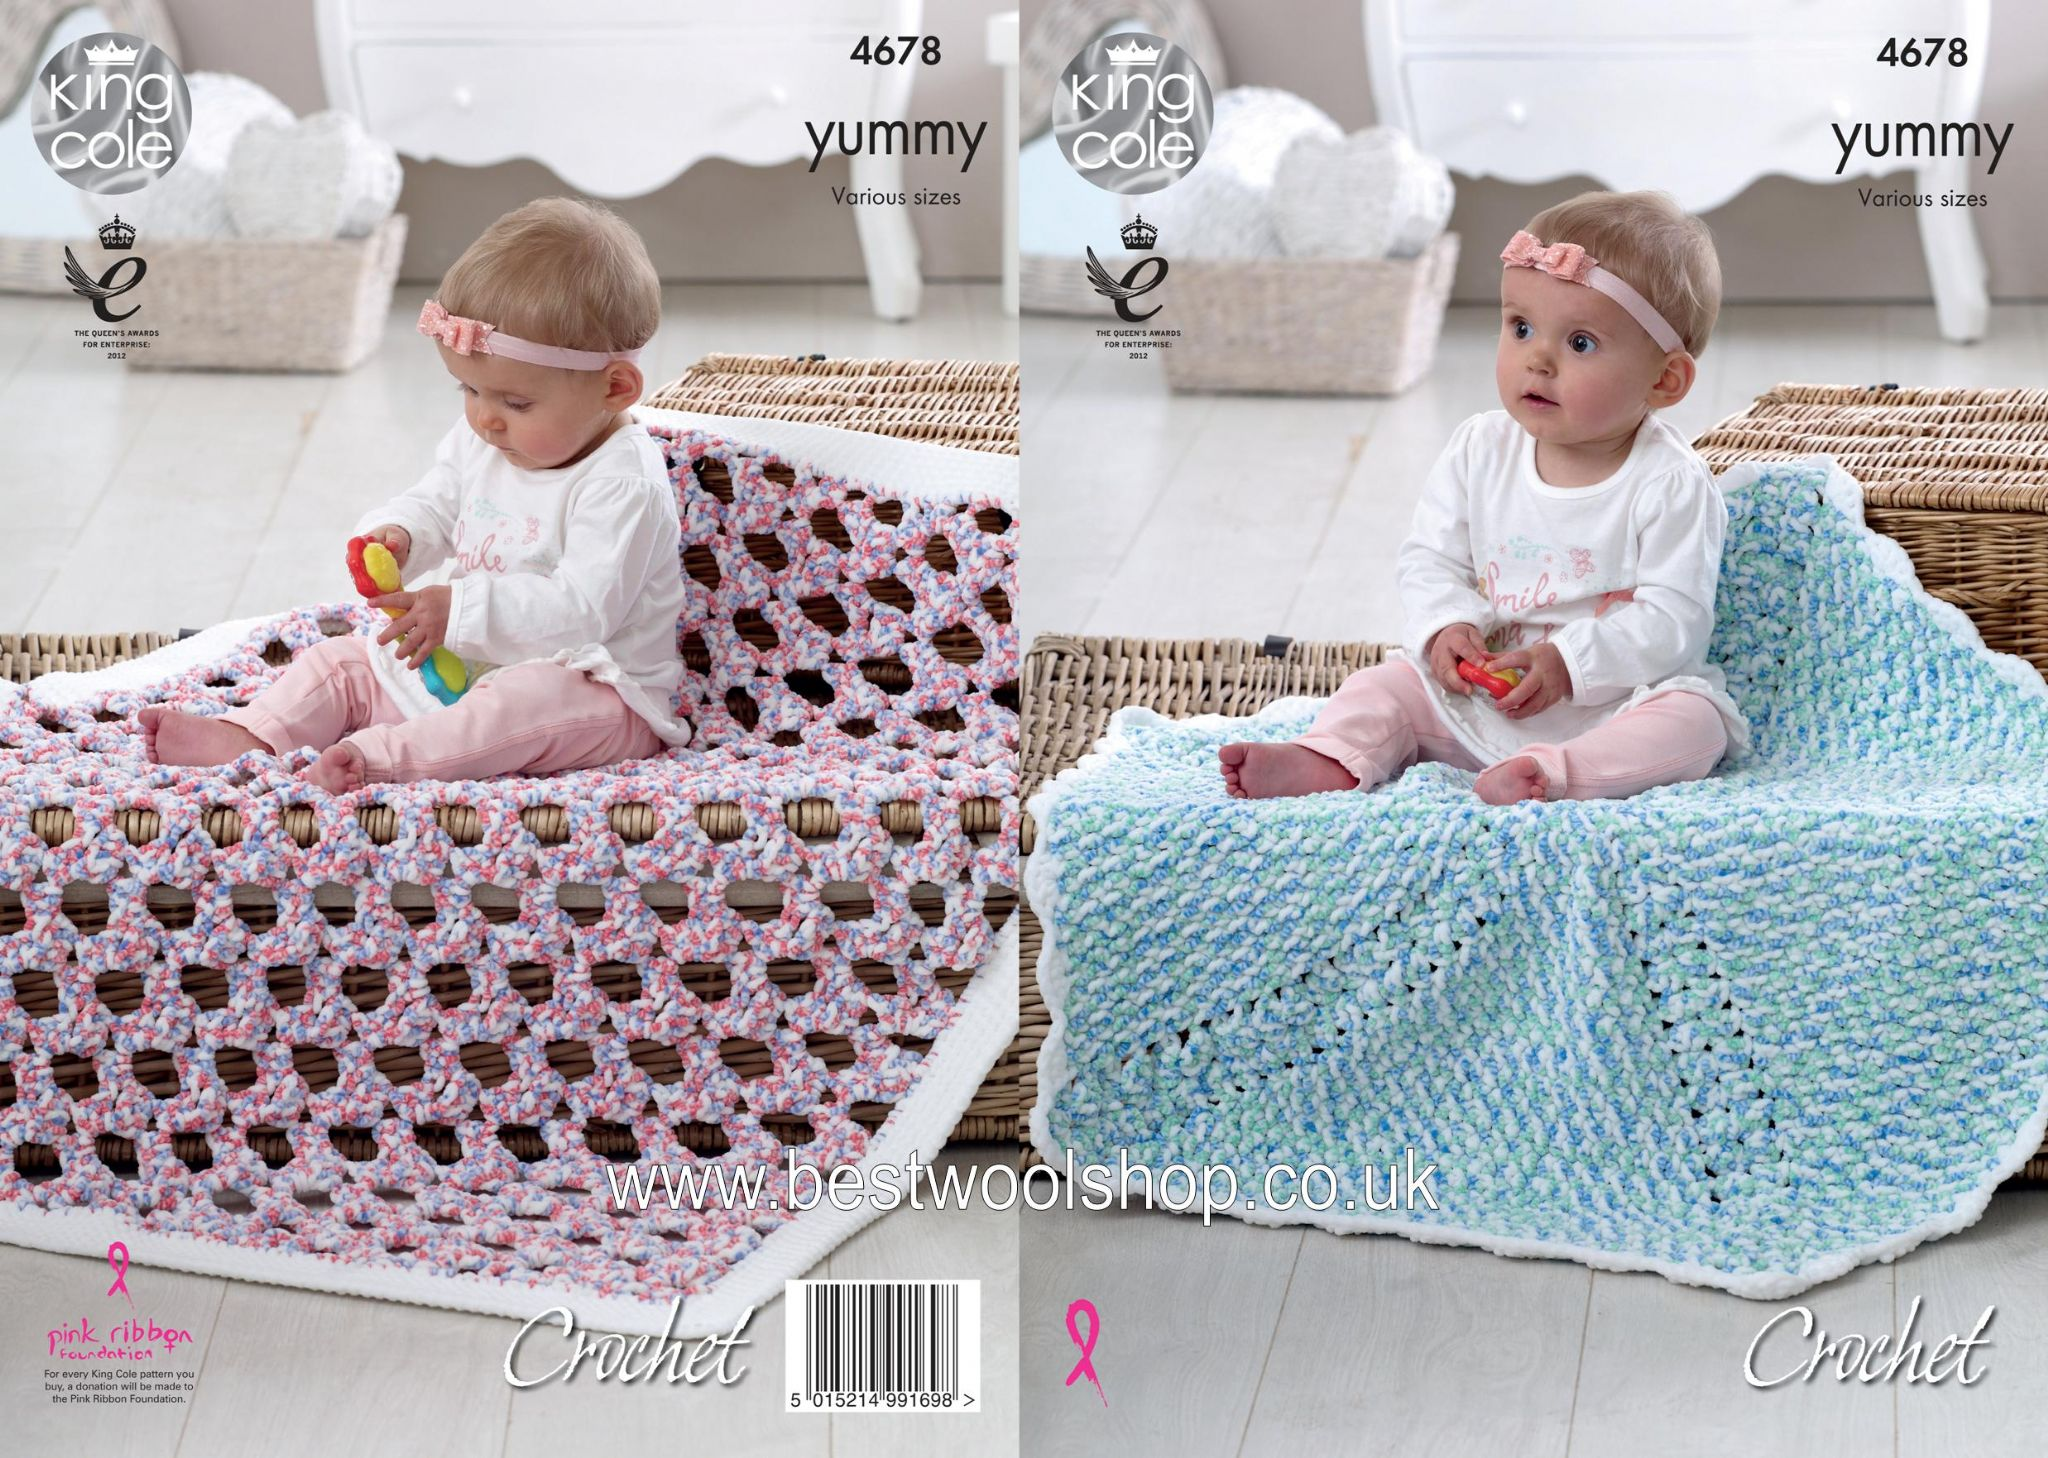 4678 king cole yummy chunky chenille round blanket square 4678 king cole yummy chunky chenille round blanket square blanket crochet pattern bankloansurffo Images